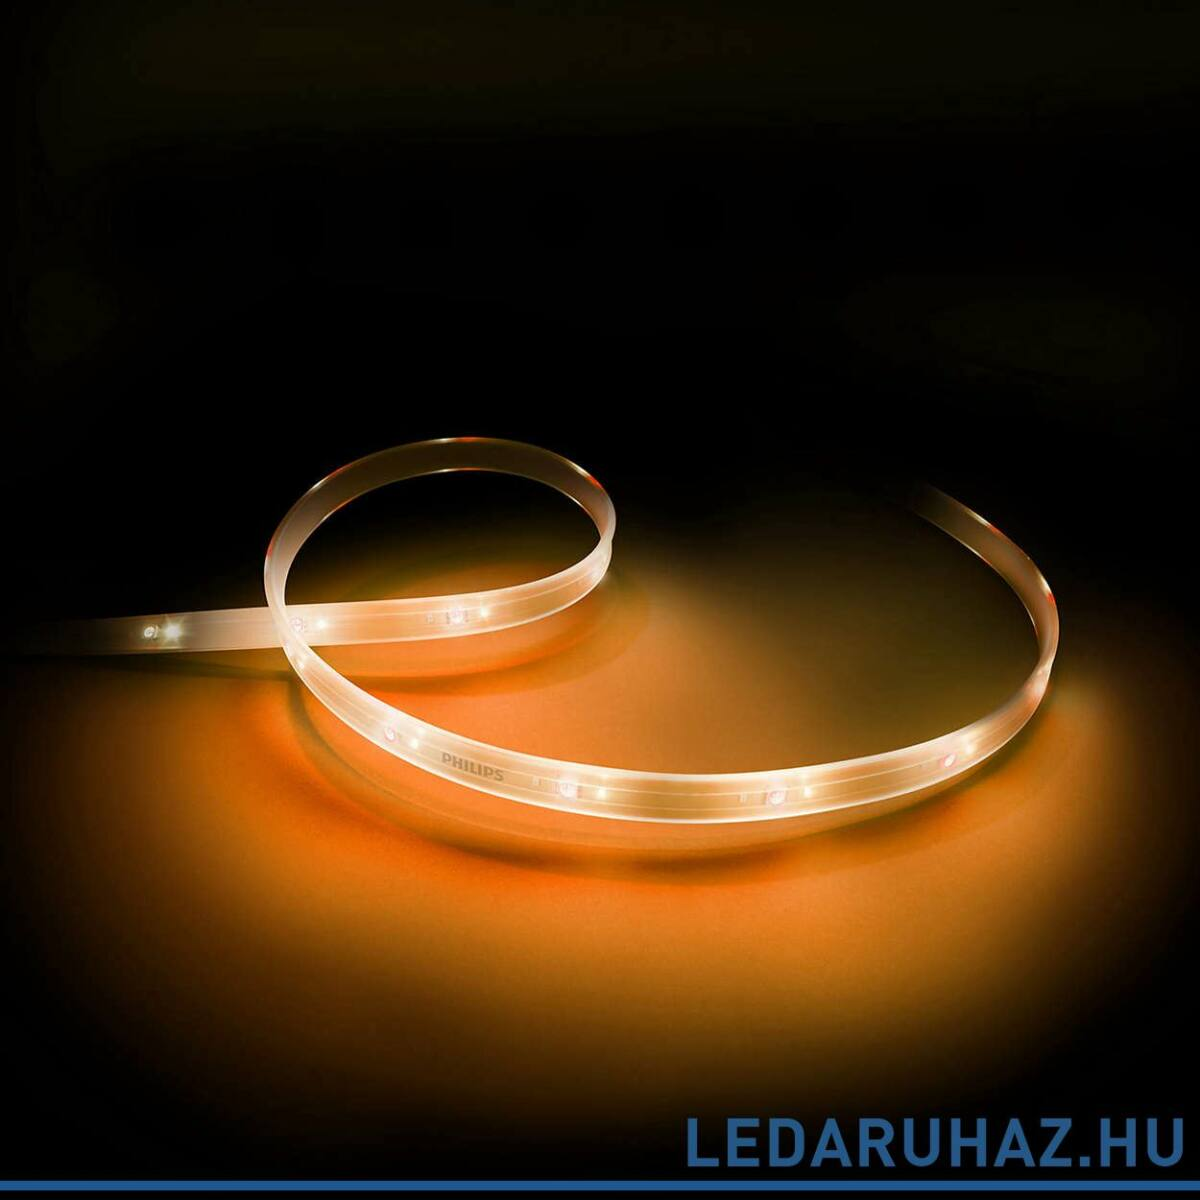 philips hue lightstrip plus led szalag 1m kieg sz t szakasz 7190255ph adapter n lk l. Black Bedroom Furniture Sets. Home Design Ideas